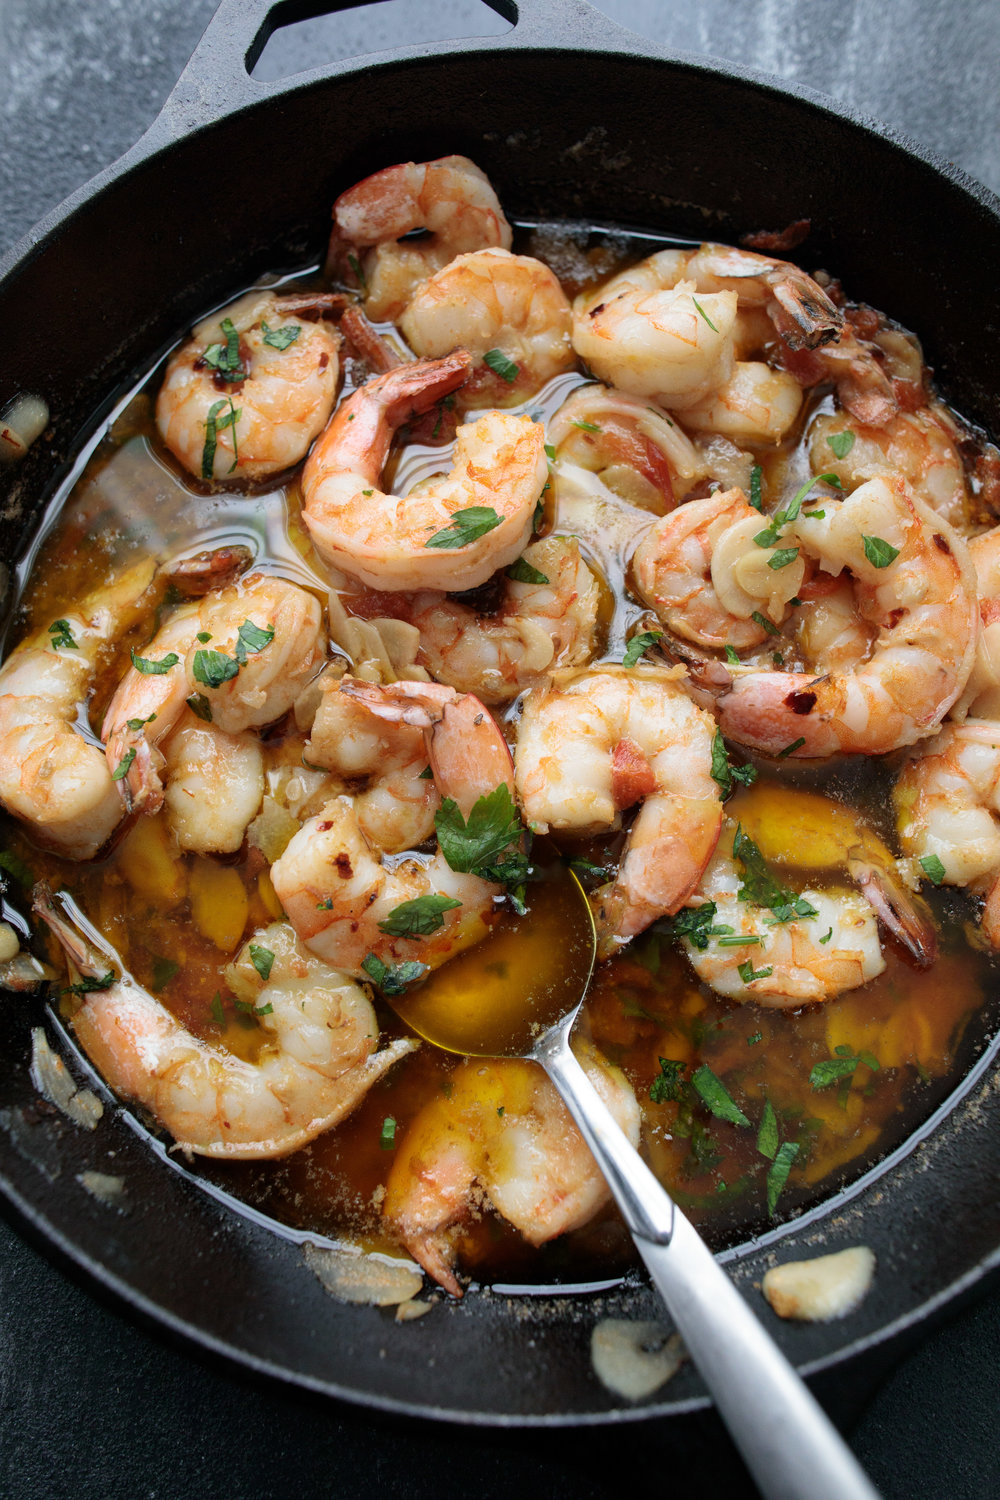 Gambas al Ajillo (Shrimp in Garlic Chili Oil) from A Thought For Food